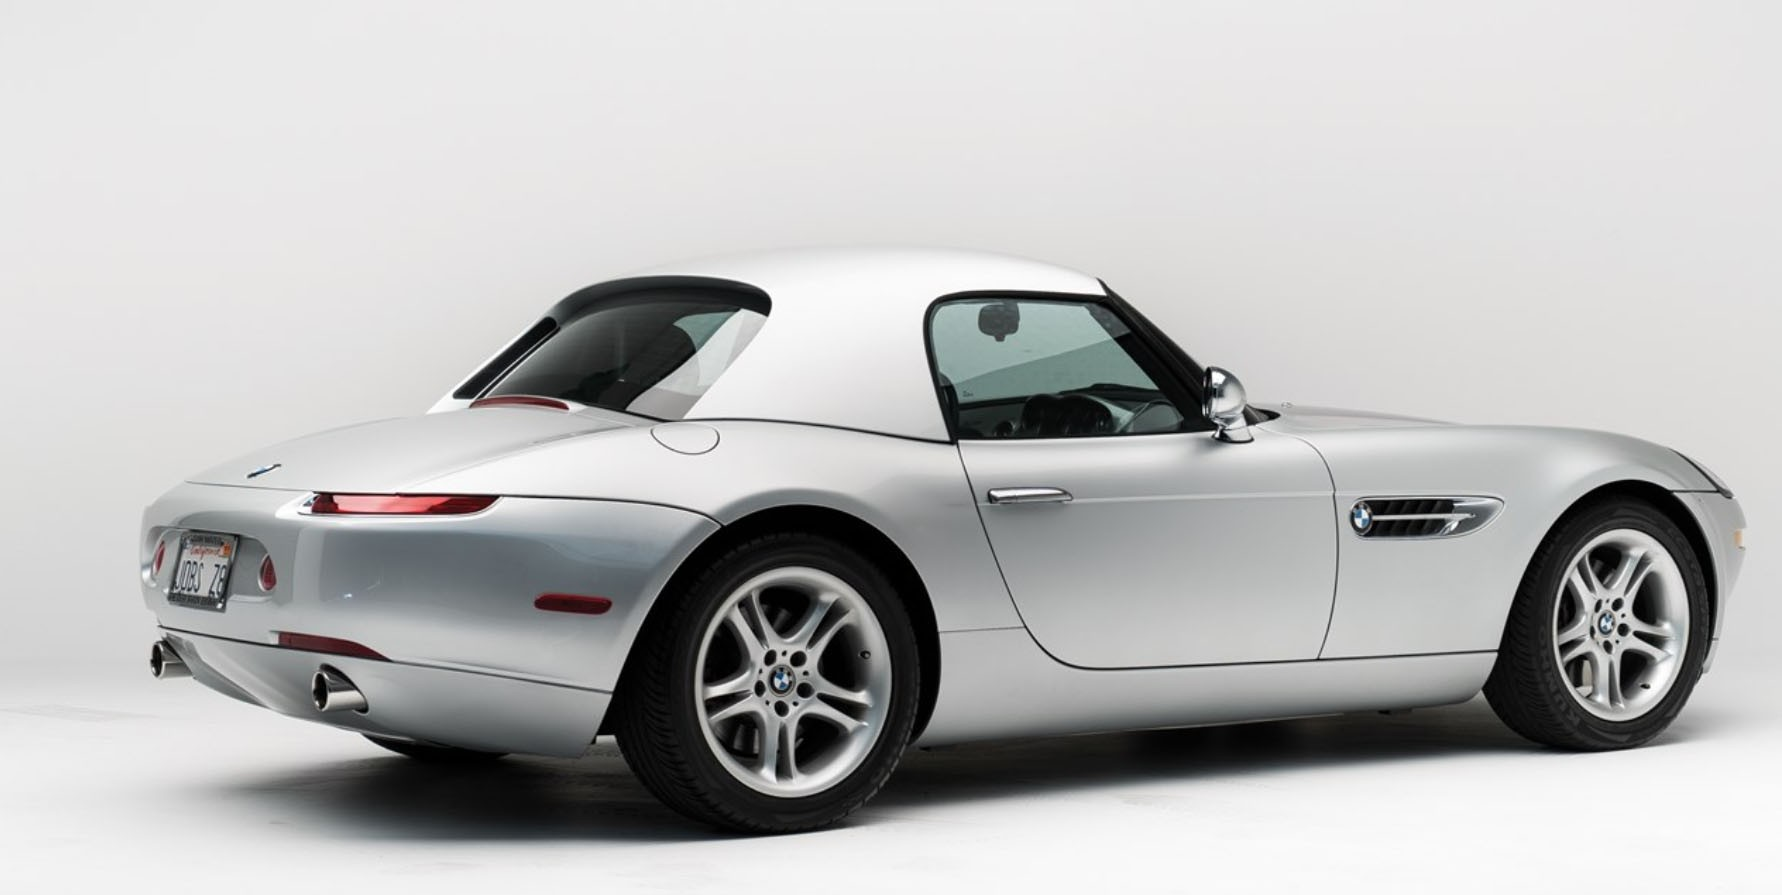 Steve Jobs 2000 Bmw Z8 Goes On Auction Motorola Flip Phone Included Autoevolution